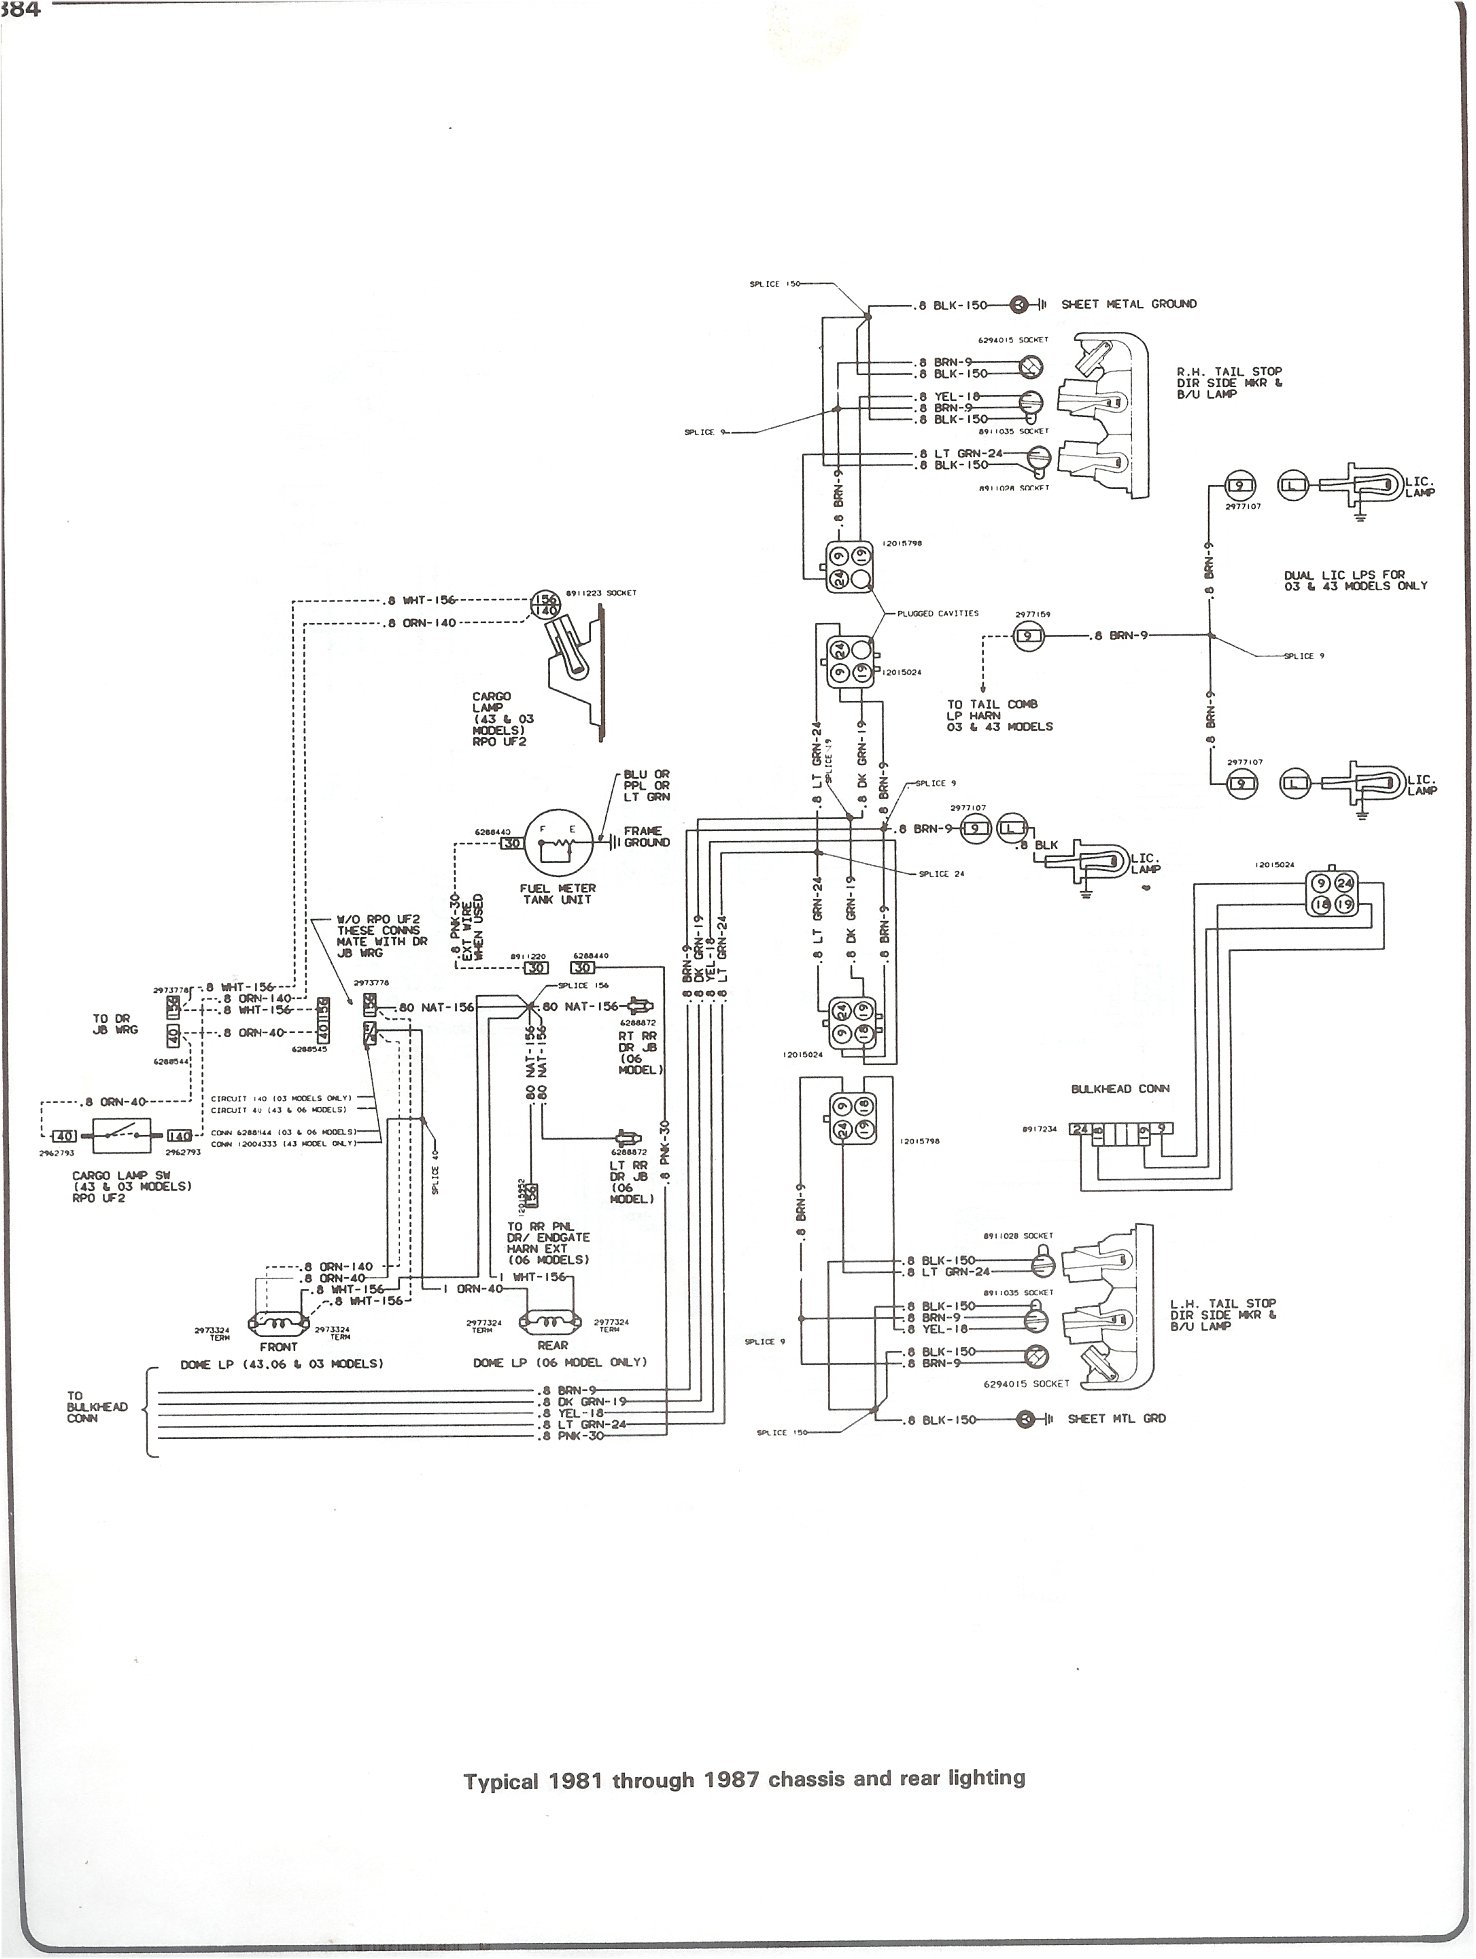 81 87_chass_rr_light complete 73 87 wiring diagrams 1992 Chevy 1500 Sensor Diagram at bayanpartner.co